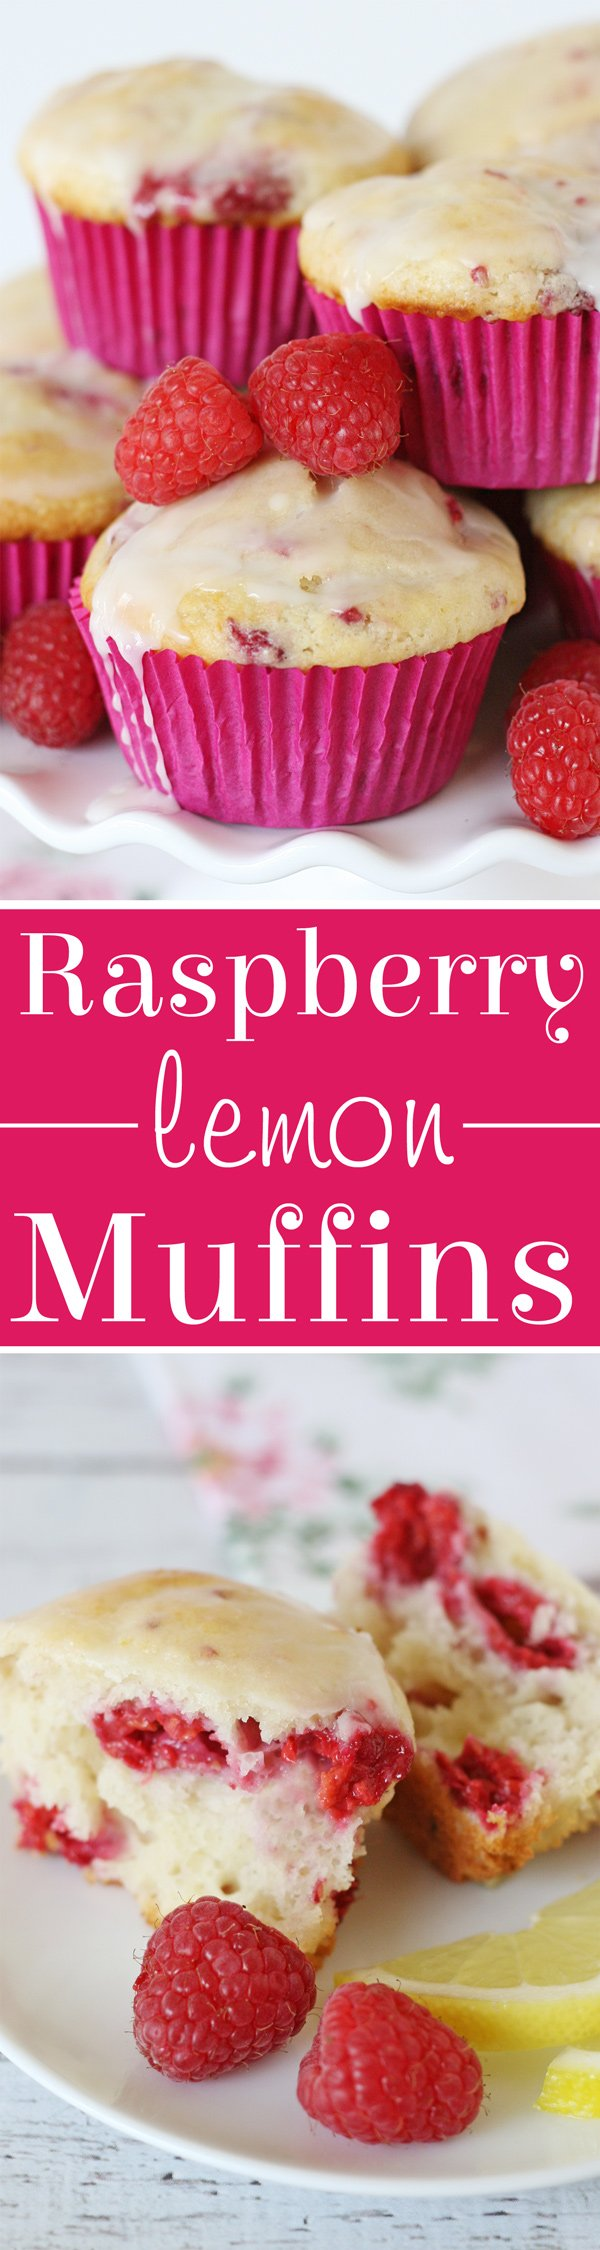 Sweet, tart and simply delicious Raspberry Lemon Muffin Recipe!